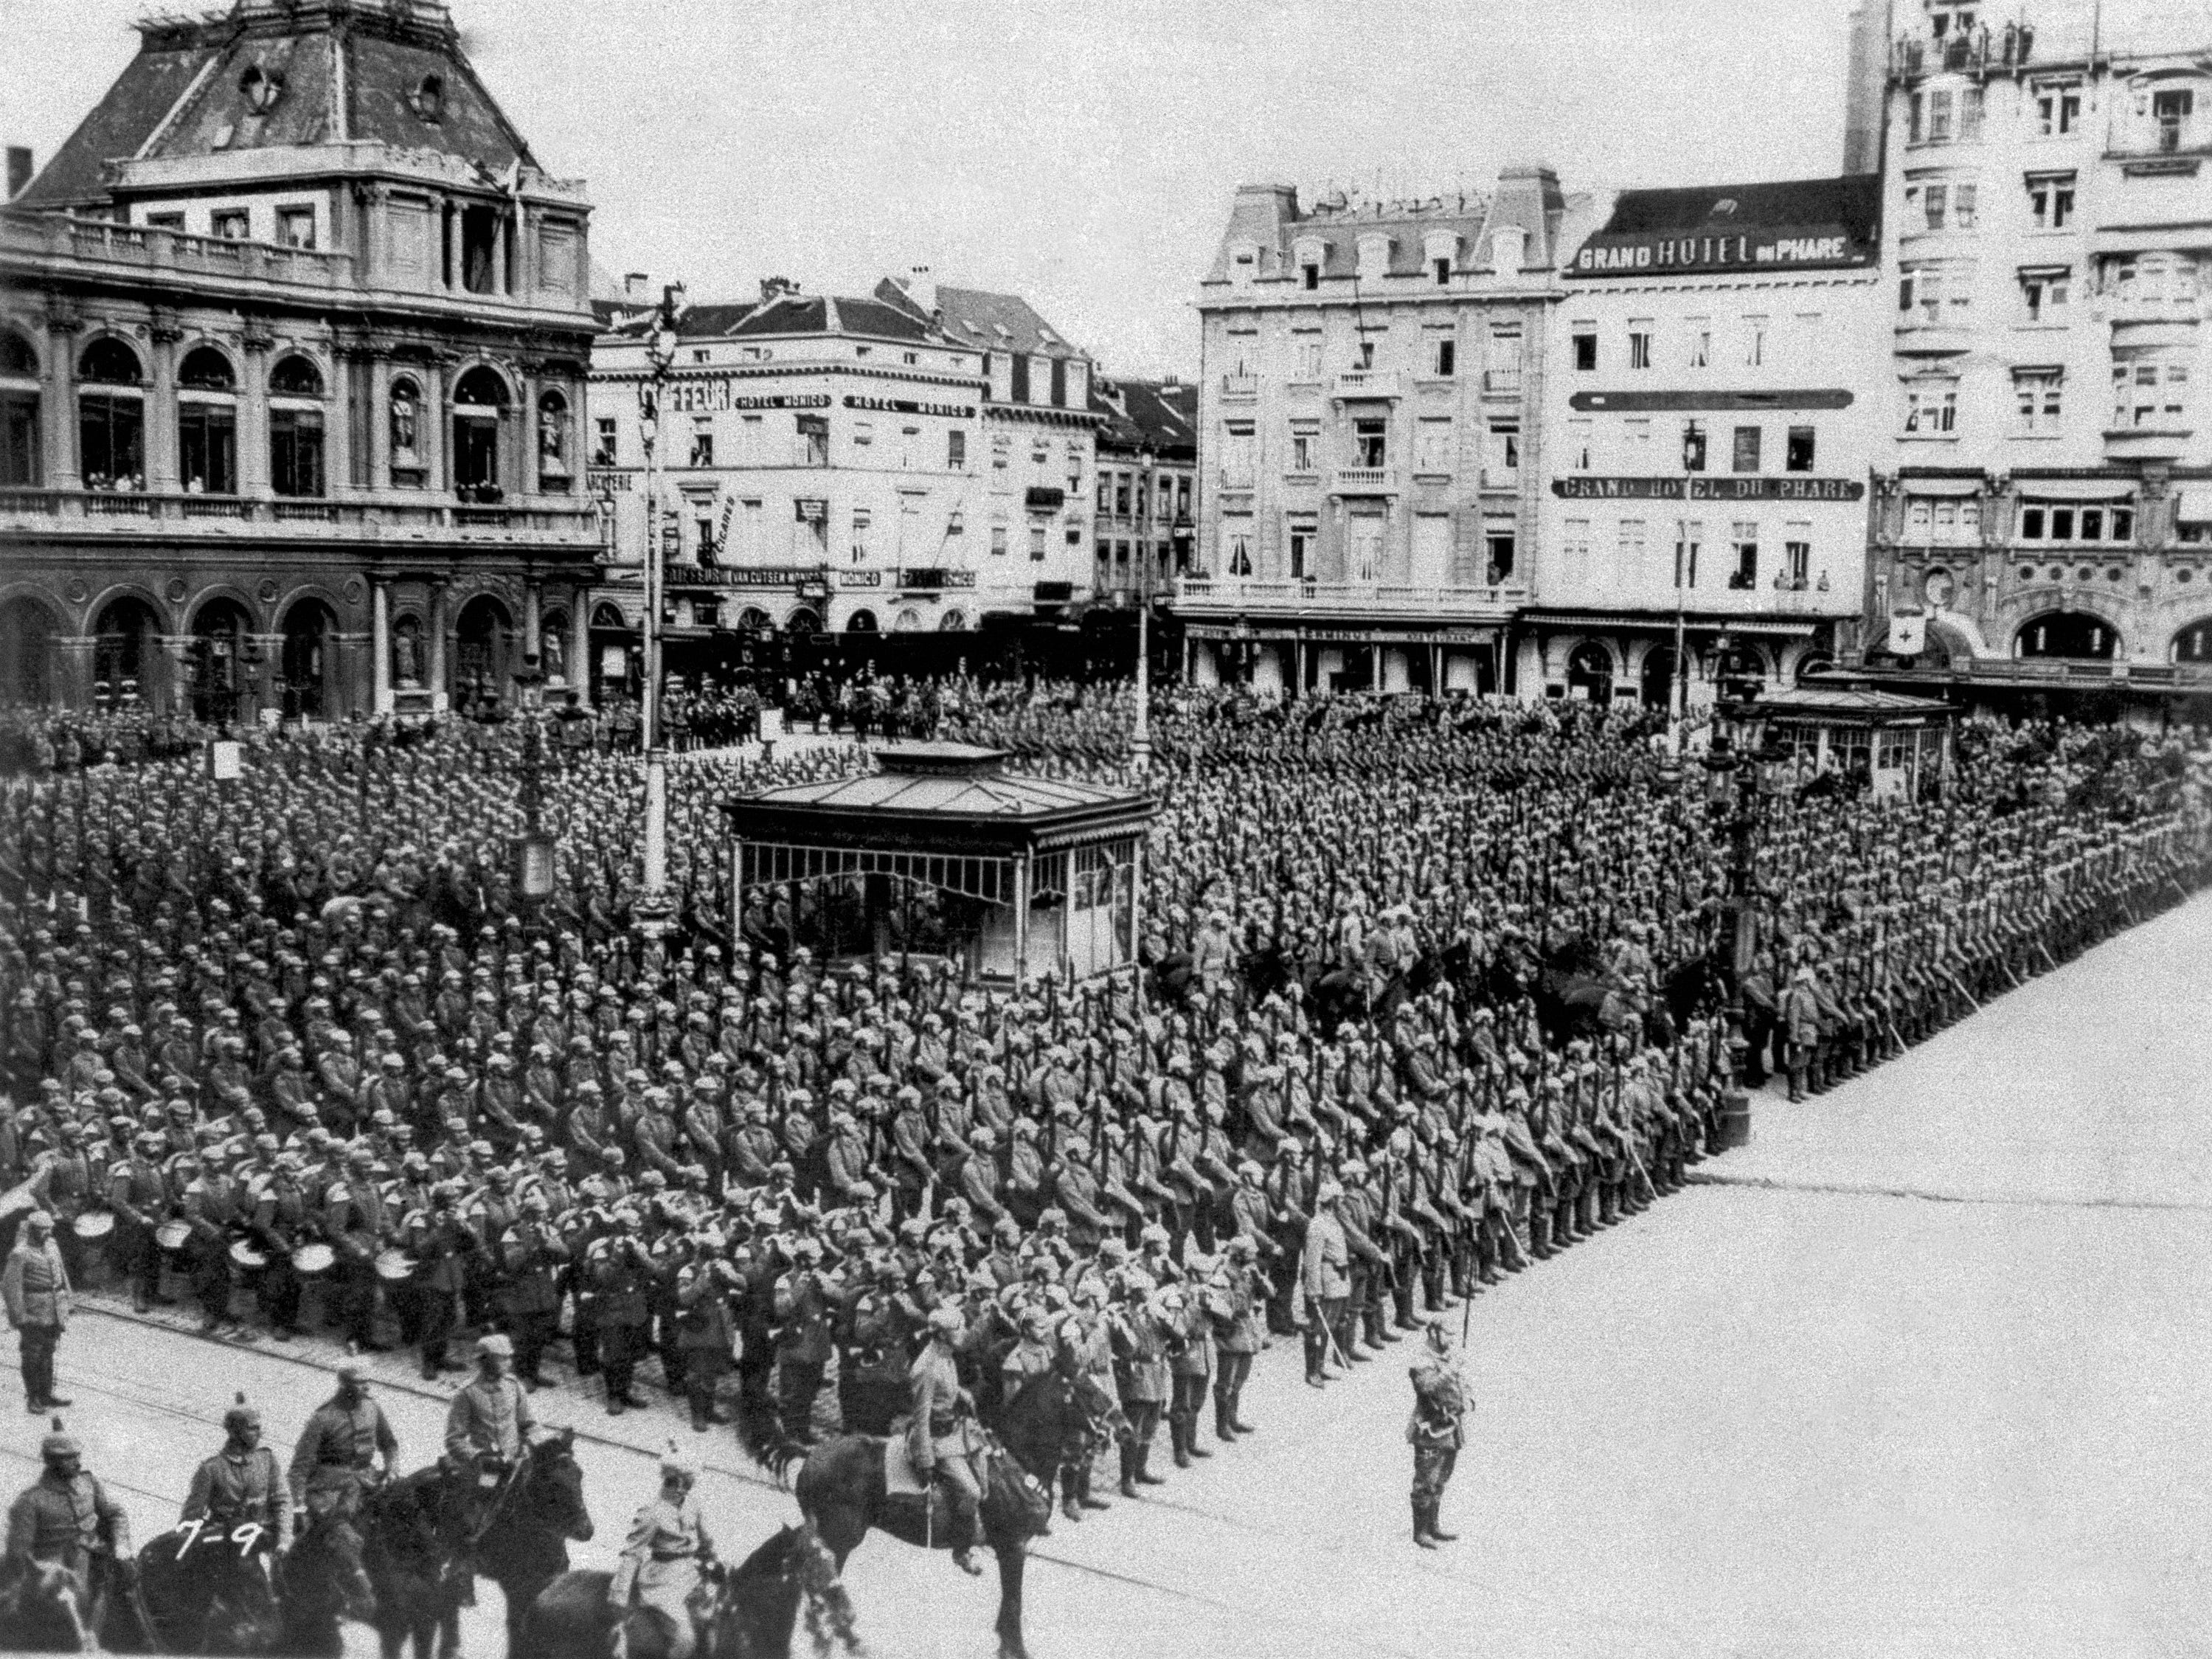 In this August 1914 photo, German troops stand in formation during the occupation of Brussels.